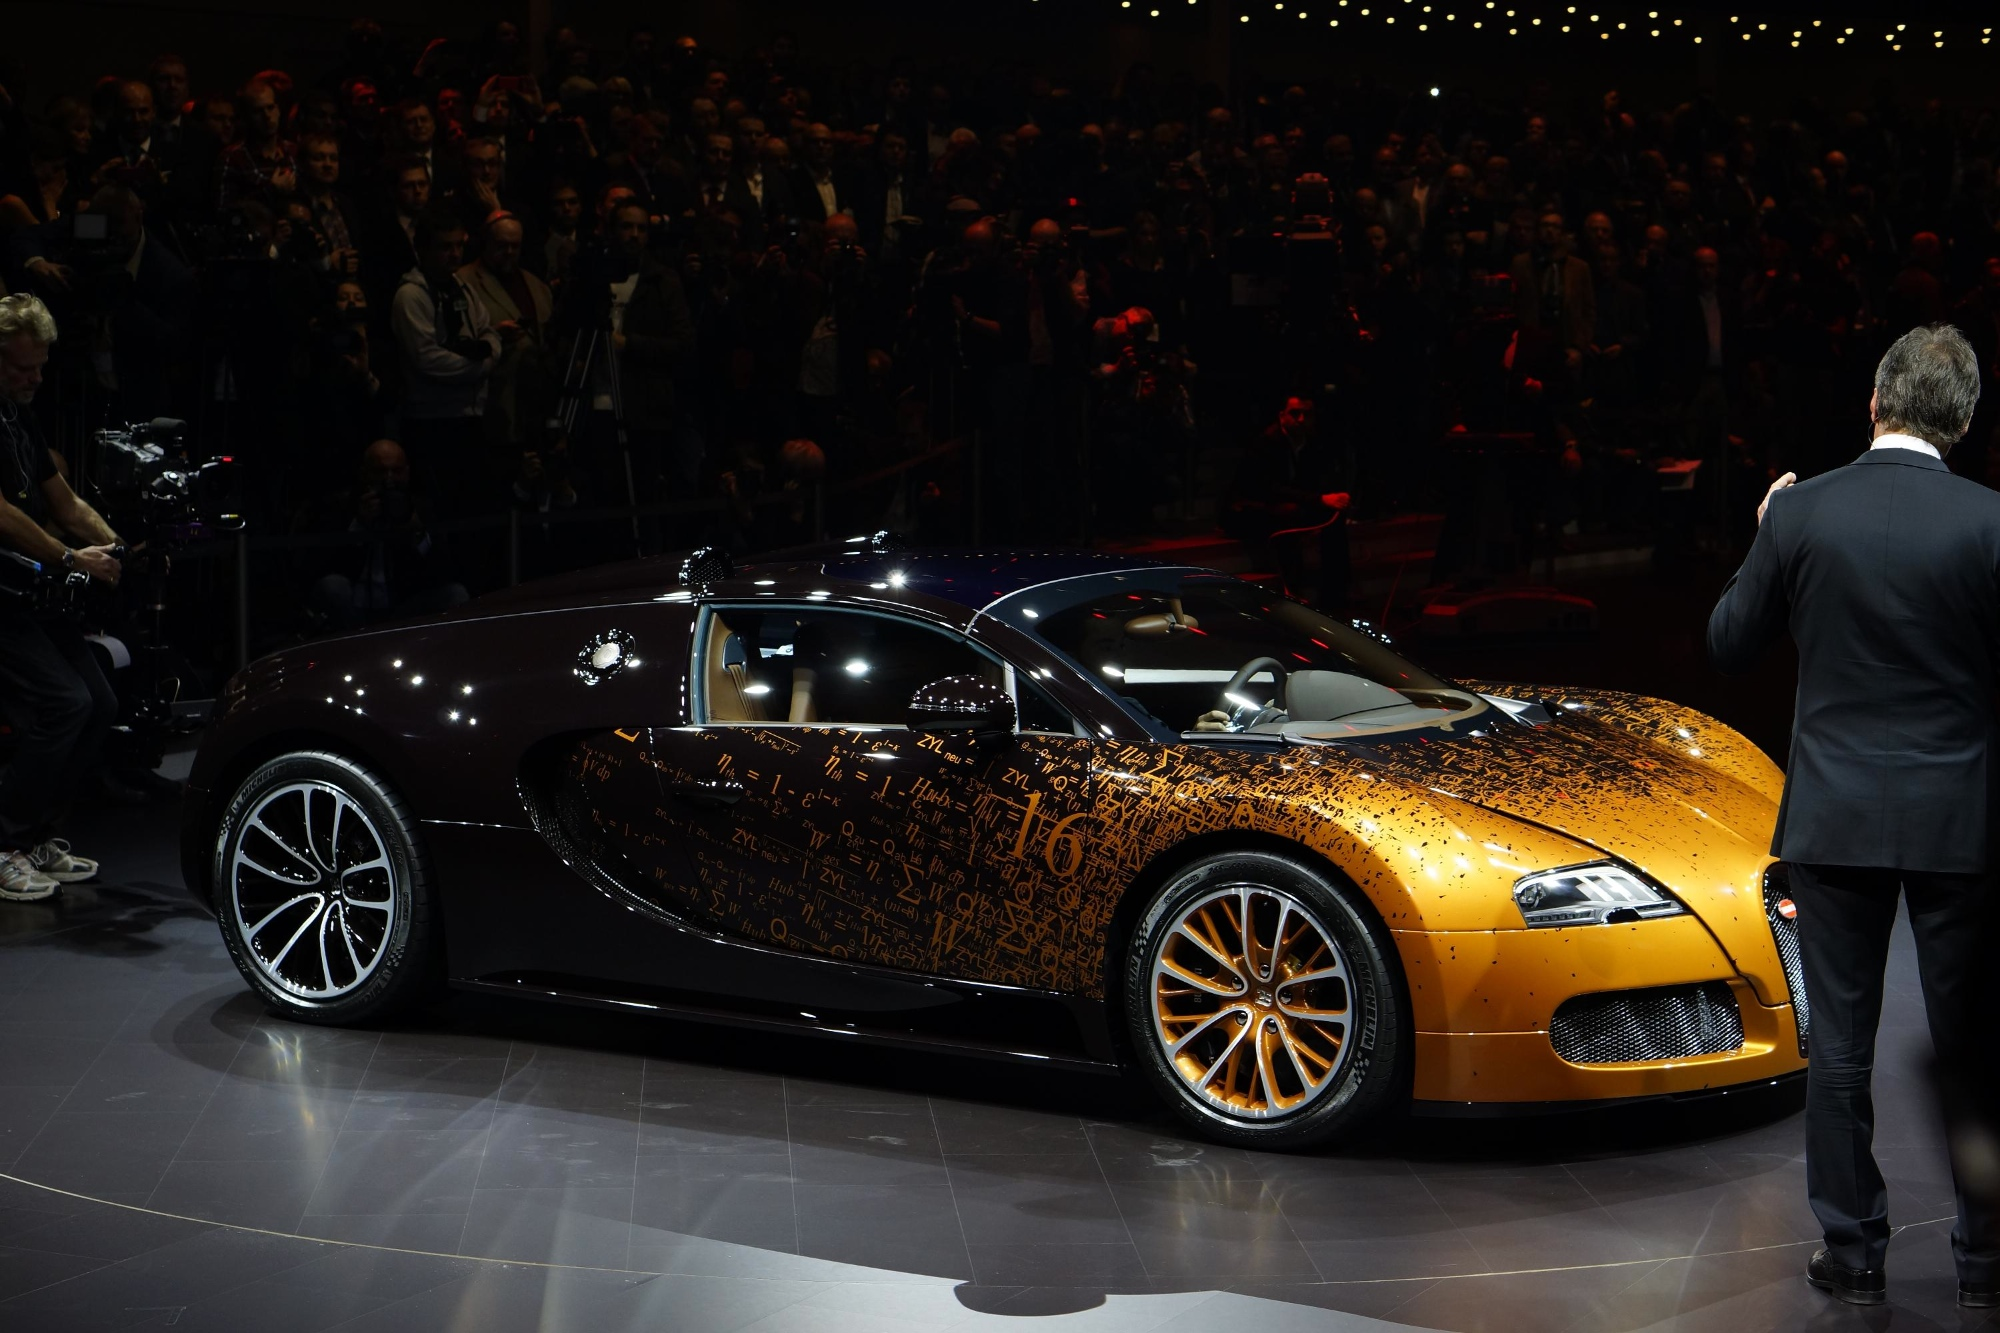 2017 Bugatti Veyron Grand Sport Bernar Venet photo - 2